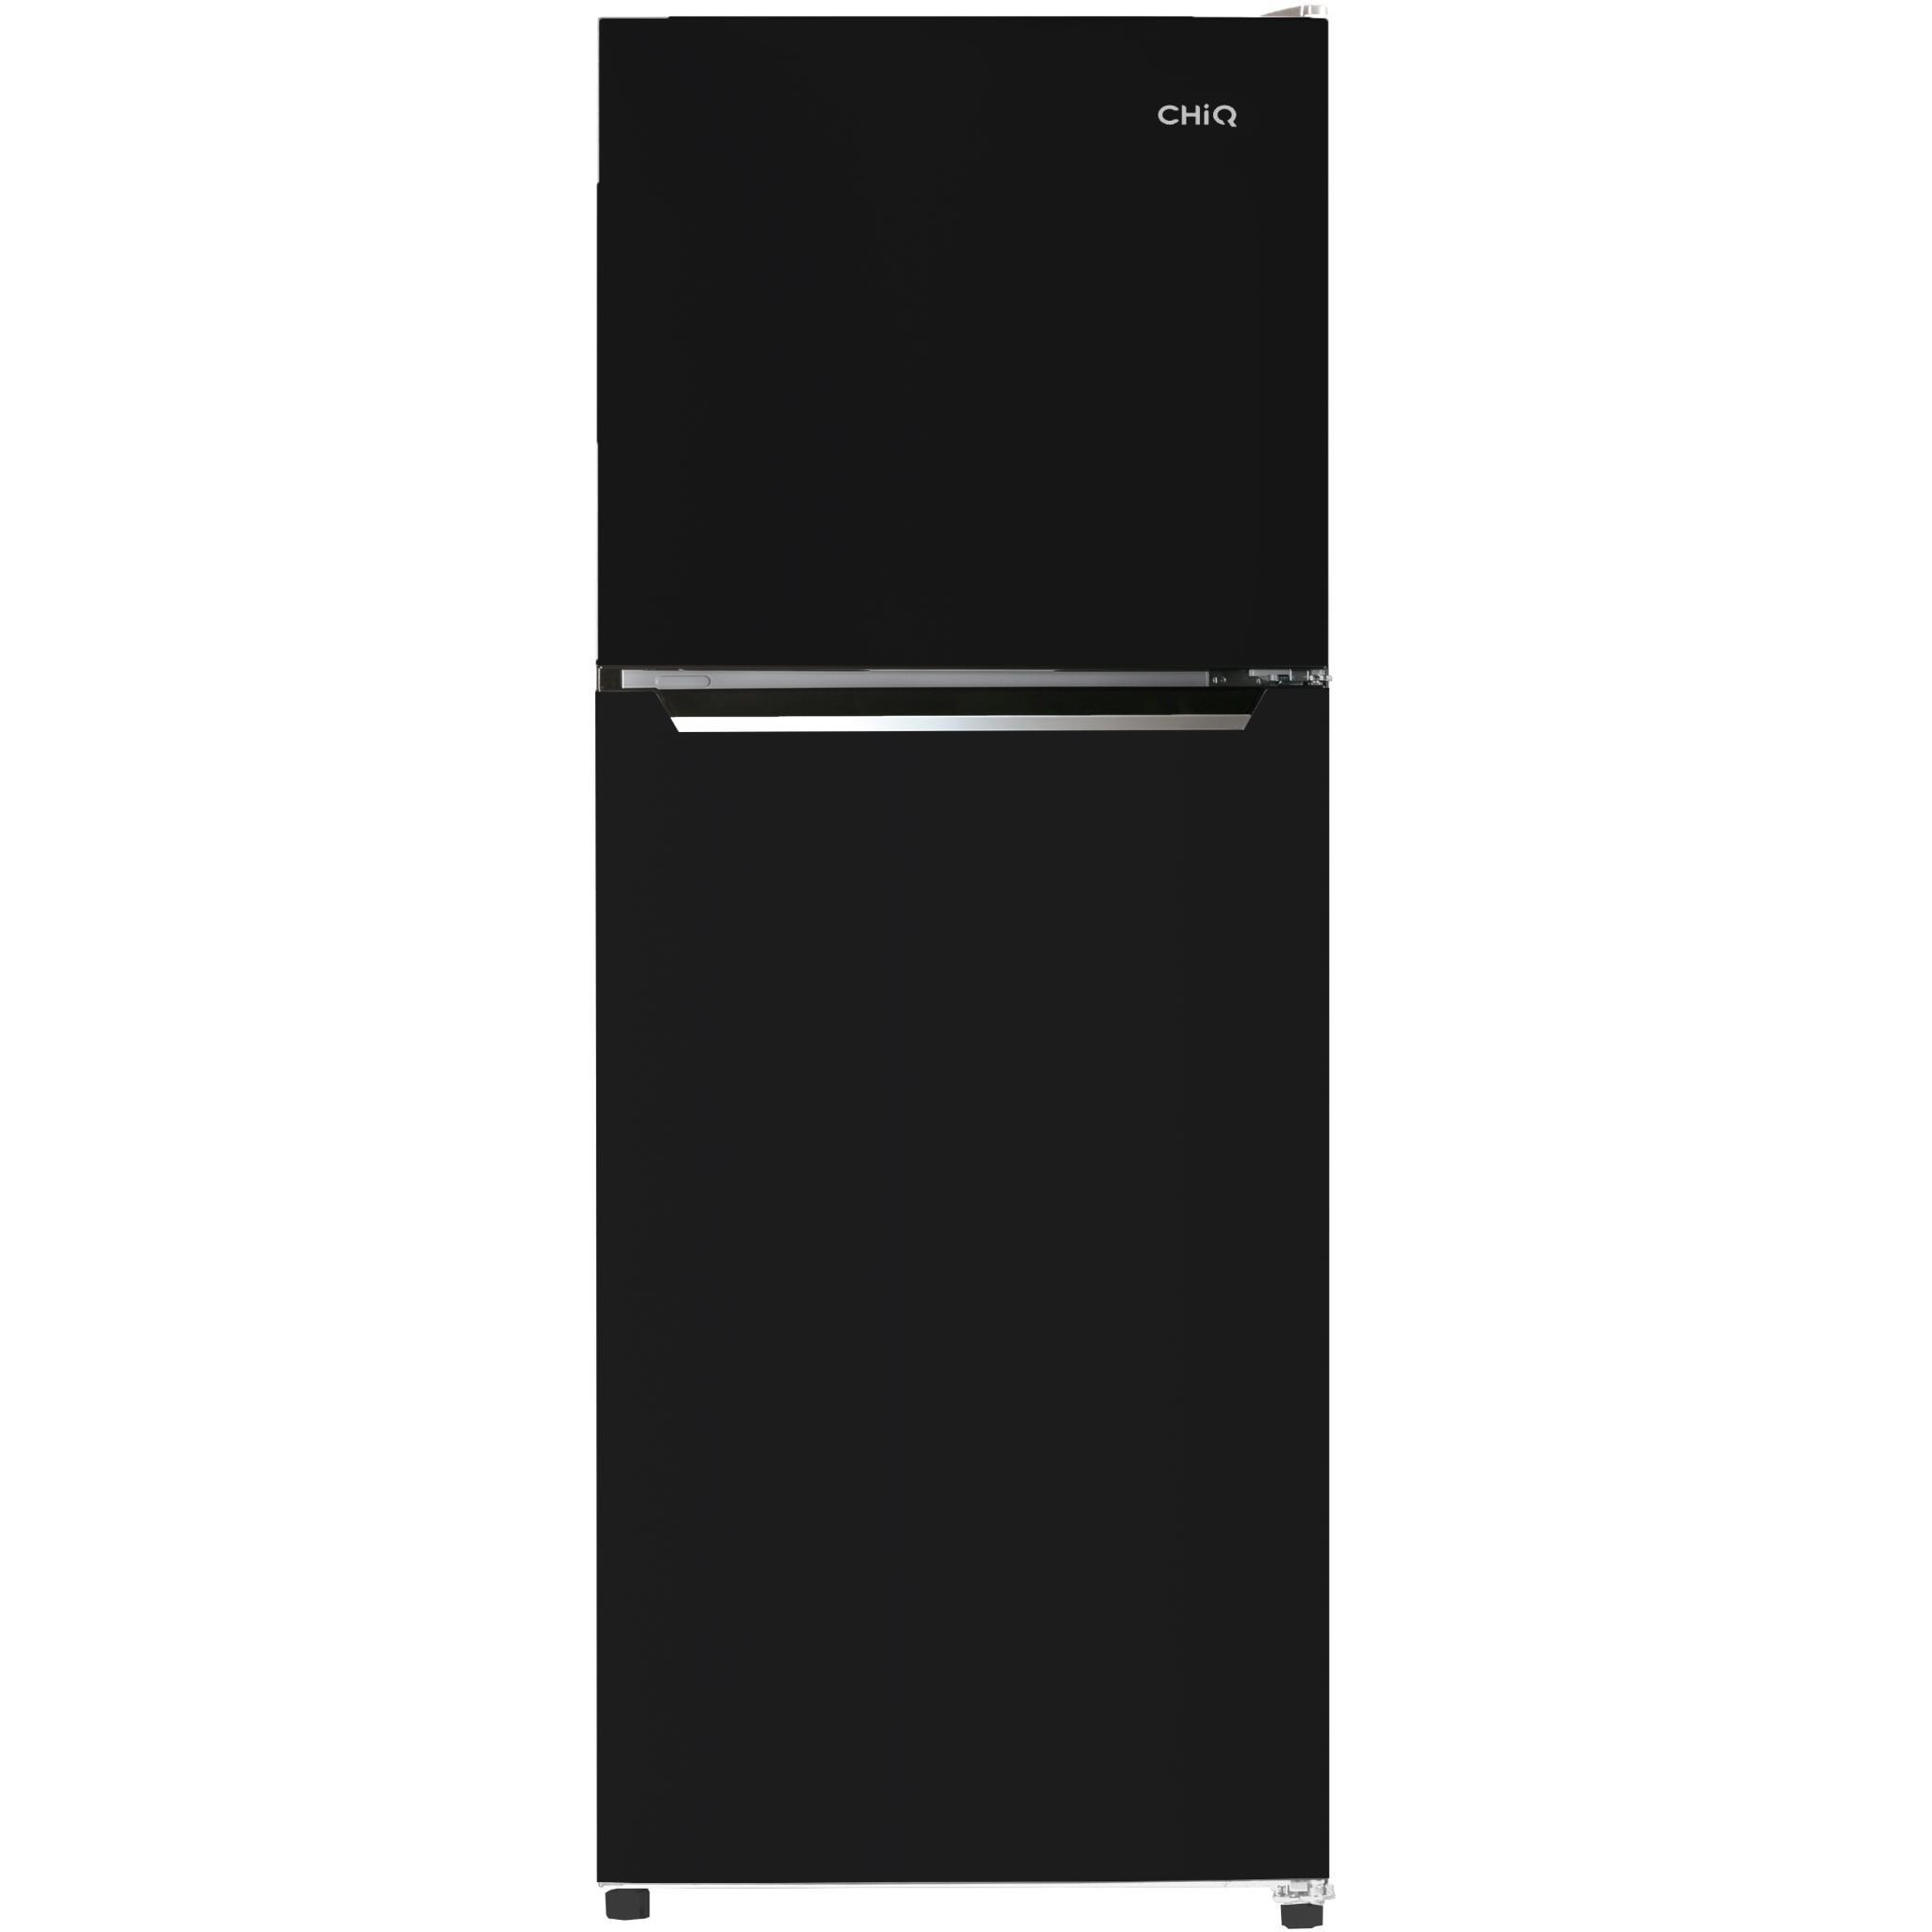 CHiQ CTM215BP 216L Top Mount Fridge (Black)